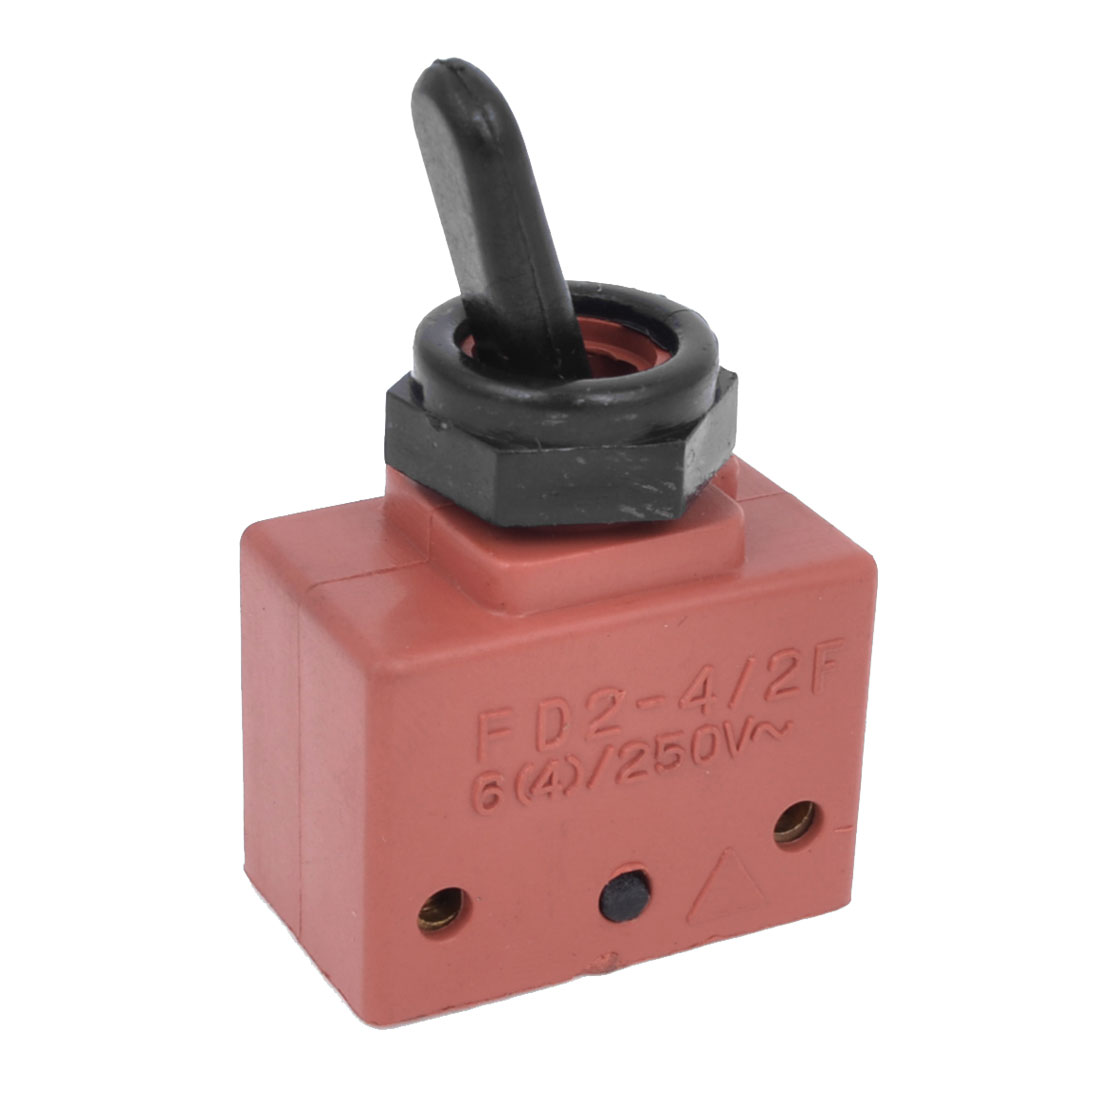 AC 250V 4A DPST NO 2 Position Latching Toggle Switch for Angle Grinder